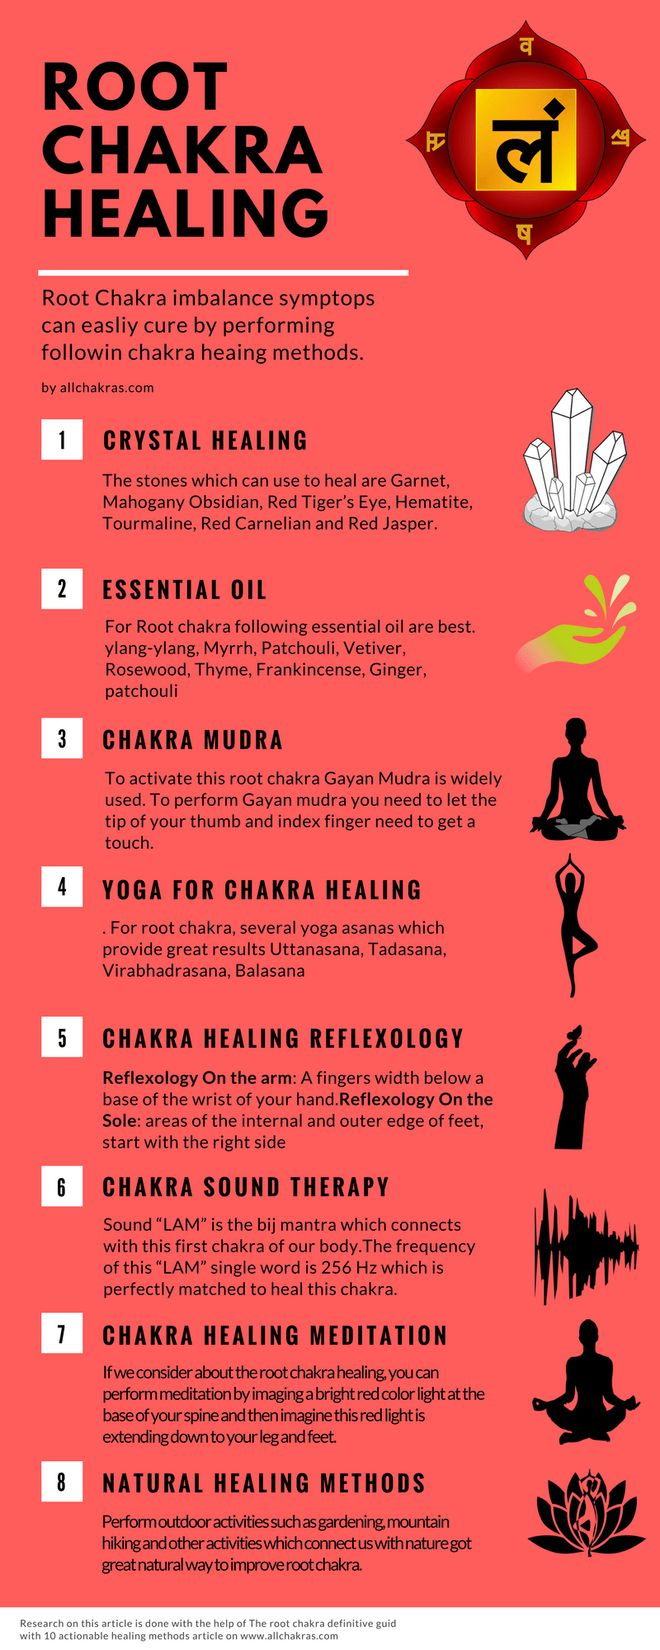 Pure Reiki Healing - The #Rootchakra Definitive Guide With 10 Actionable Healing Methods #chakrahealing #allchakra - Amazing Secret Discovered by Middle-Aged Construction Worker Releases Healing Energy Through The Palm of His Hands... Cures Diseases and Ailments Just By Touching Them... And Even Heals People Over Vast Distances...